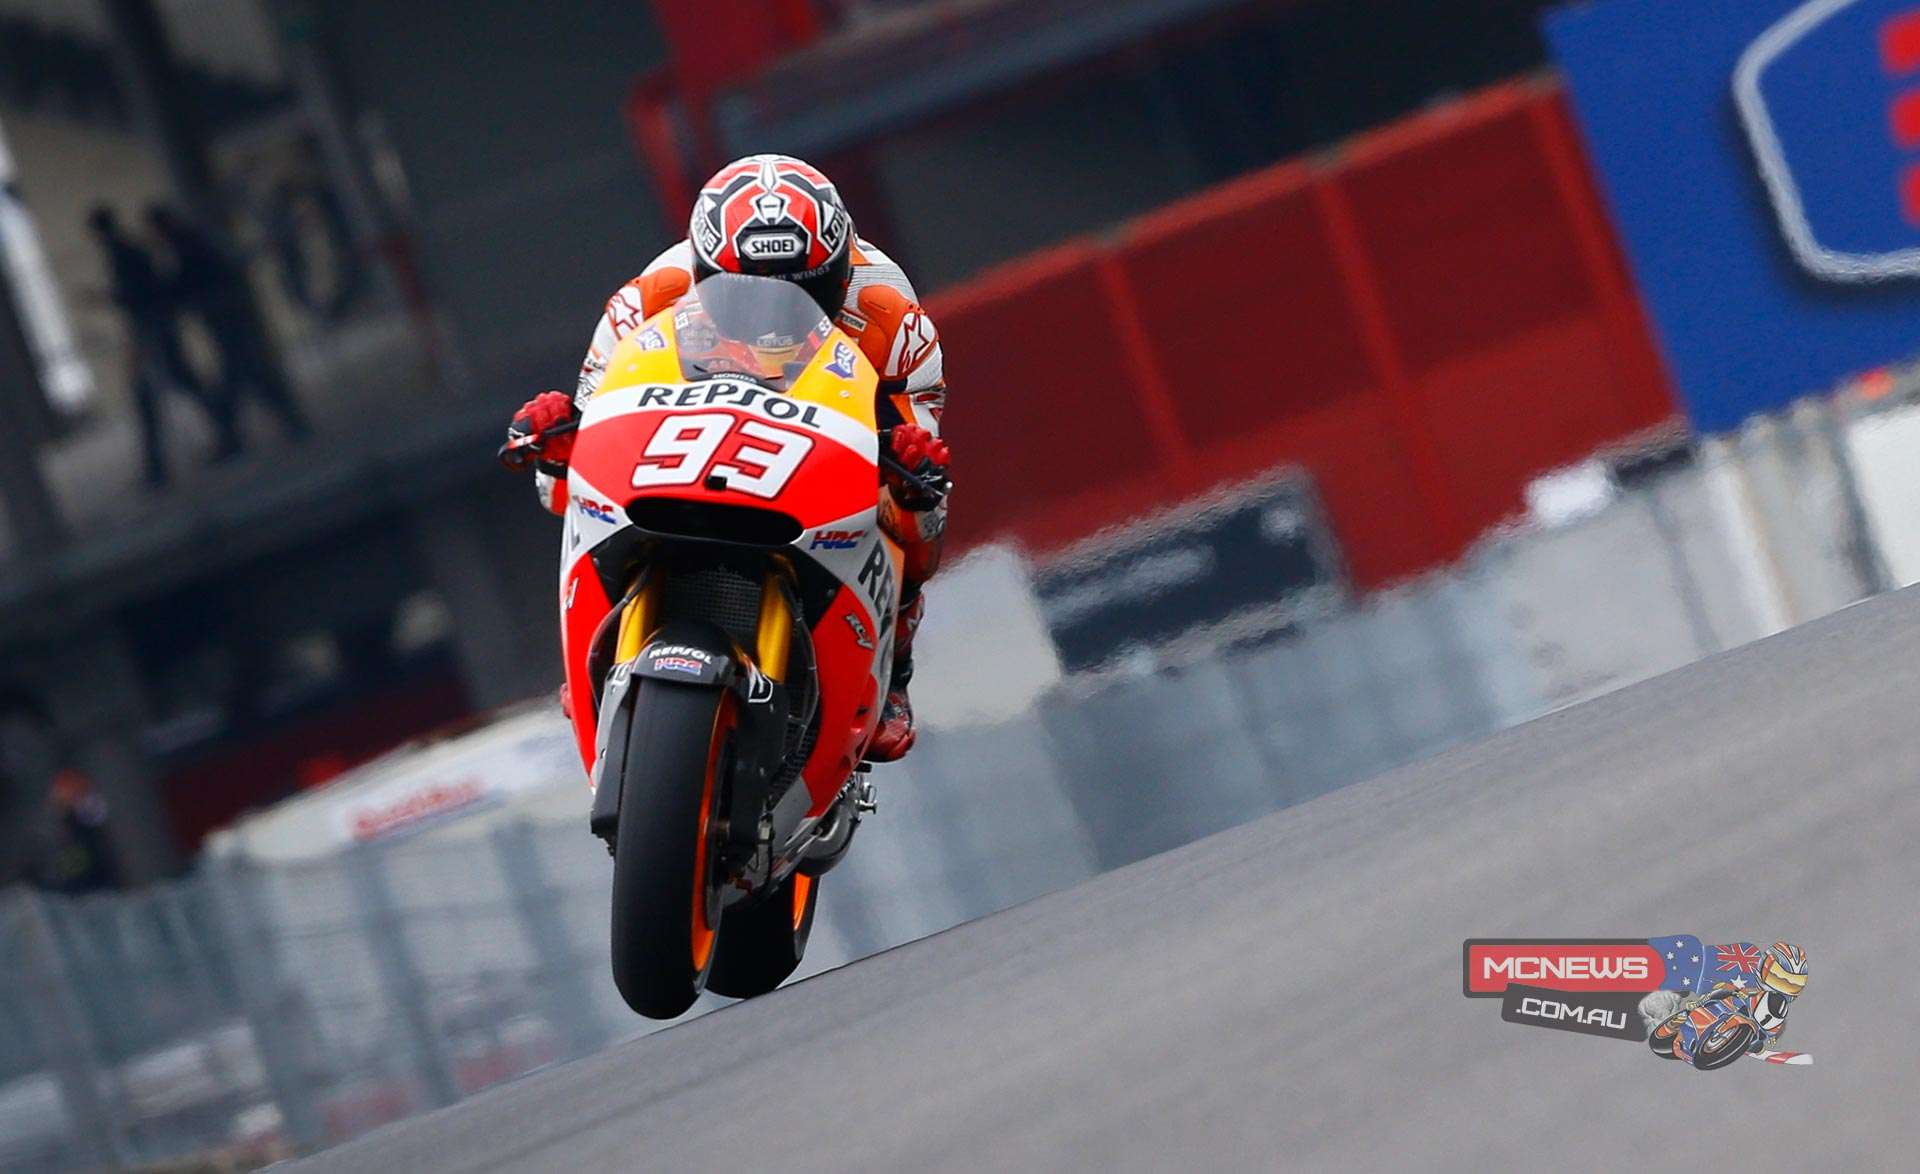 "Marc Marquez - 1st - 1'48.004 - ""Today was a really good day, I began with a few questions on my mind after last year - when this track was one of those that I found most difficult - and I saw that things have changed completely after a year of experience. The morning went well and the feeling was good, but in the afternoon we didn't go out as it was raining on-and-off and the surface was neither fit for dry riding nor wet tyres. I felt very comfortable on the bike, there was a big difference compared to last year and I'm feeling much better about things and we hope to continue improving"""